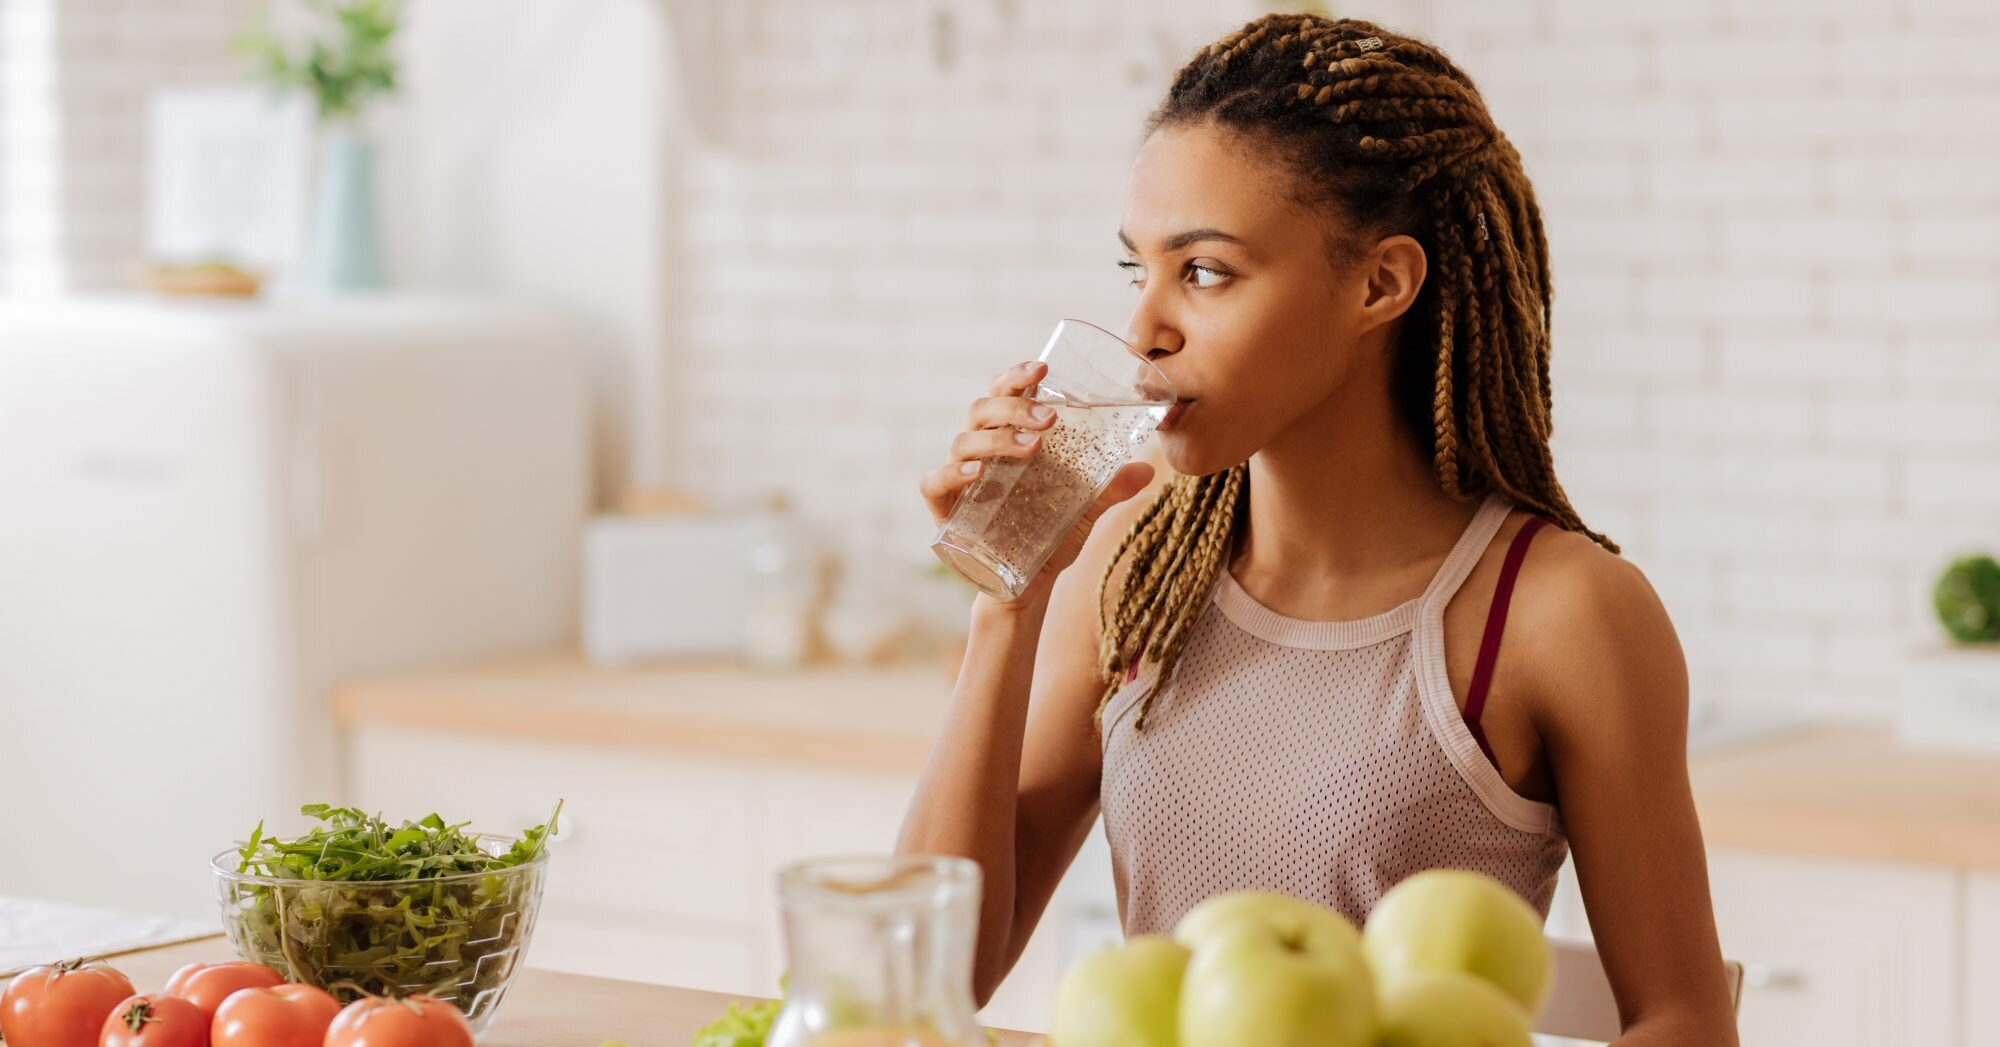 How to Detox Your Body in a Safe, Healthy Way